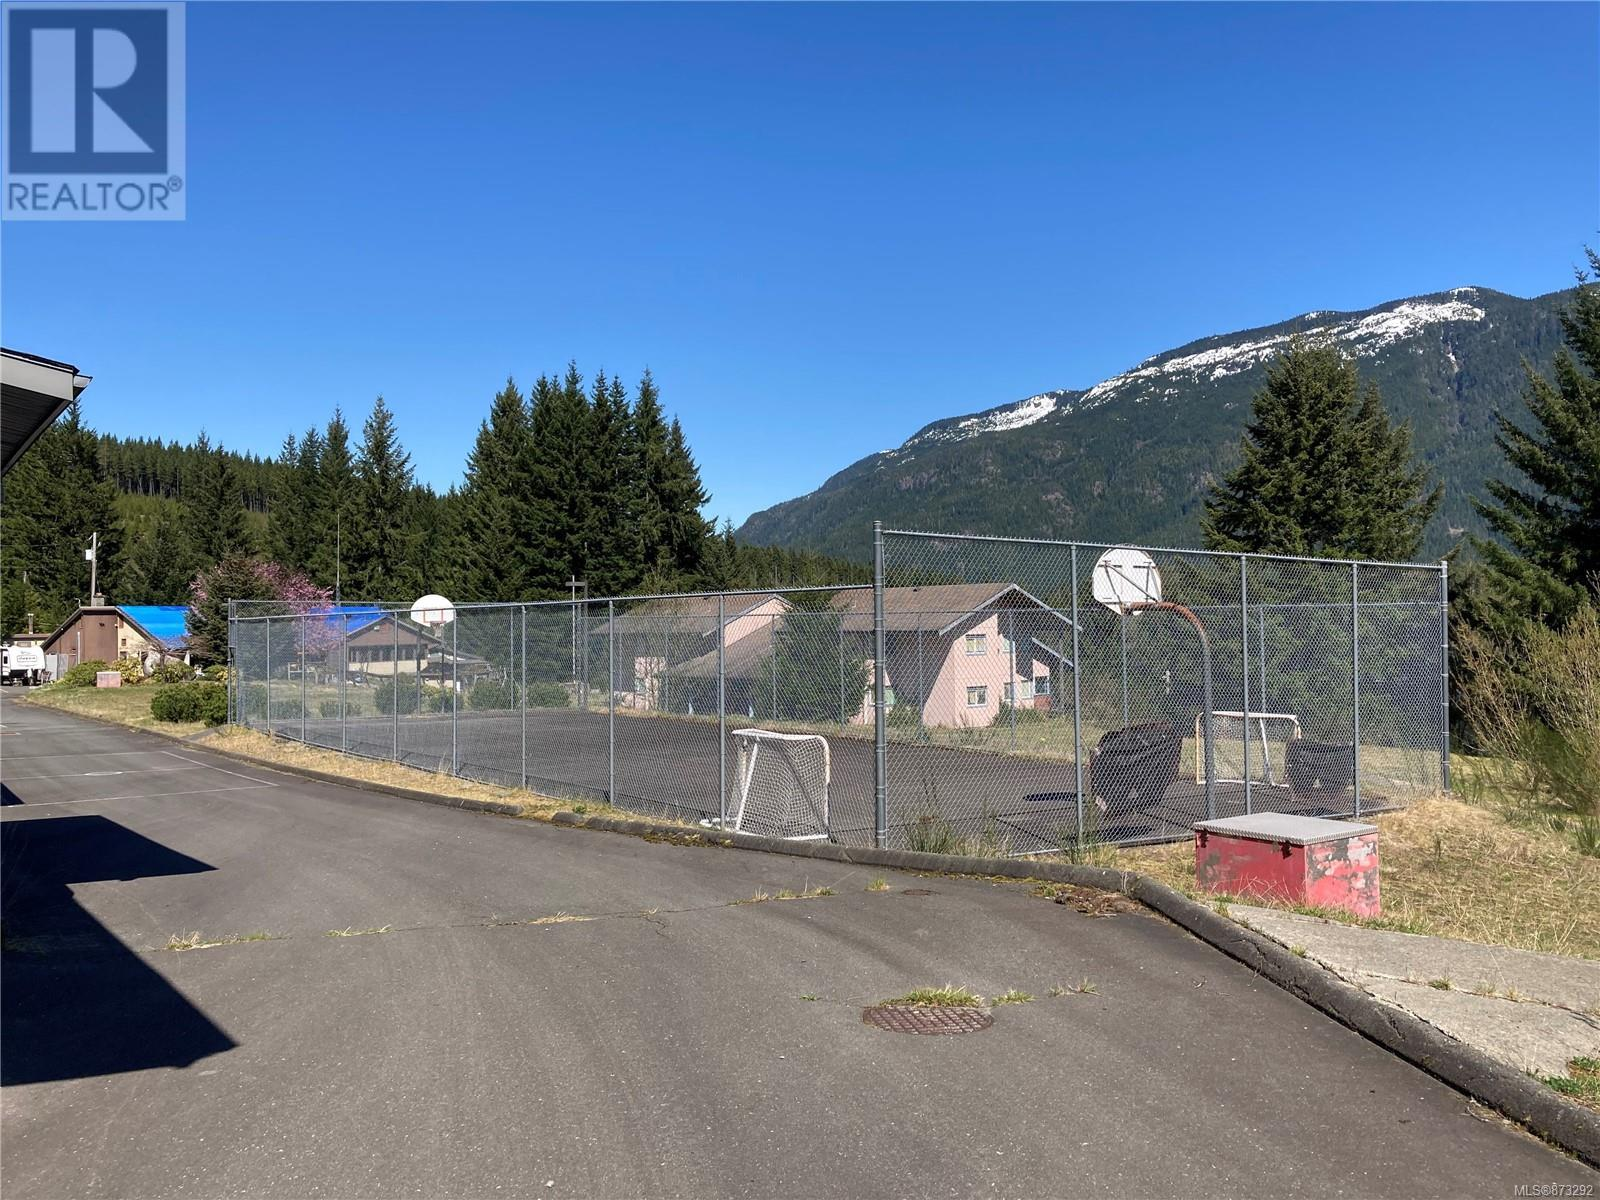 MLS® #873292 - Campbell River Commercial Mix For sale Image #13